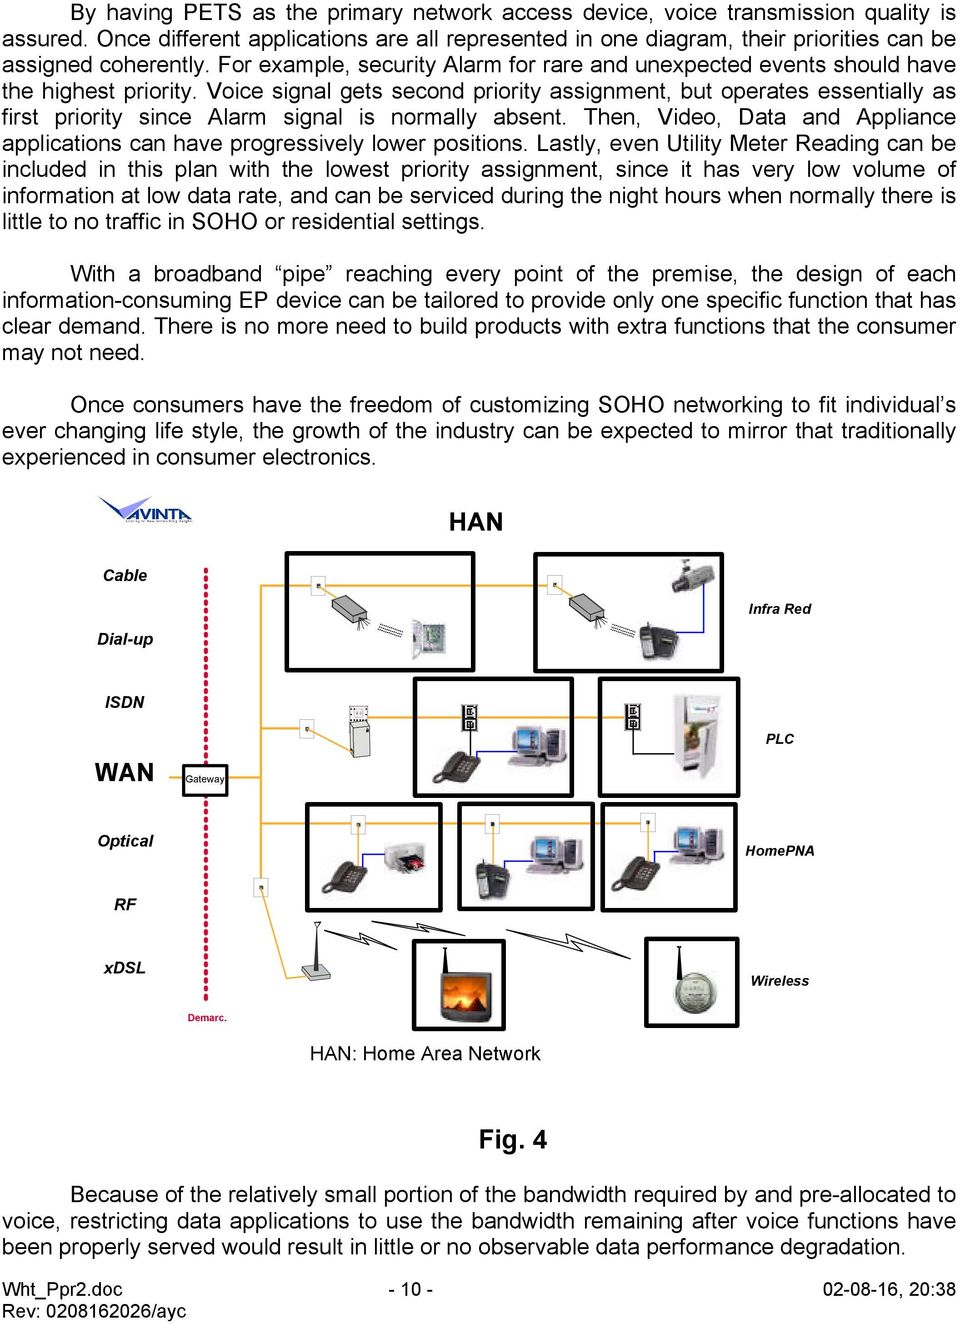 Avinta Communications Inc Soho Residential Networking Myth Poweroverethernet Poe On Industrialbased Fig 2 Voice Signal Gets Second Priority Assignment But Operates Essentially As First Since Alarm